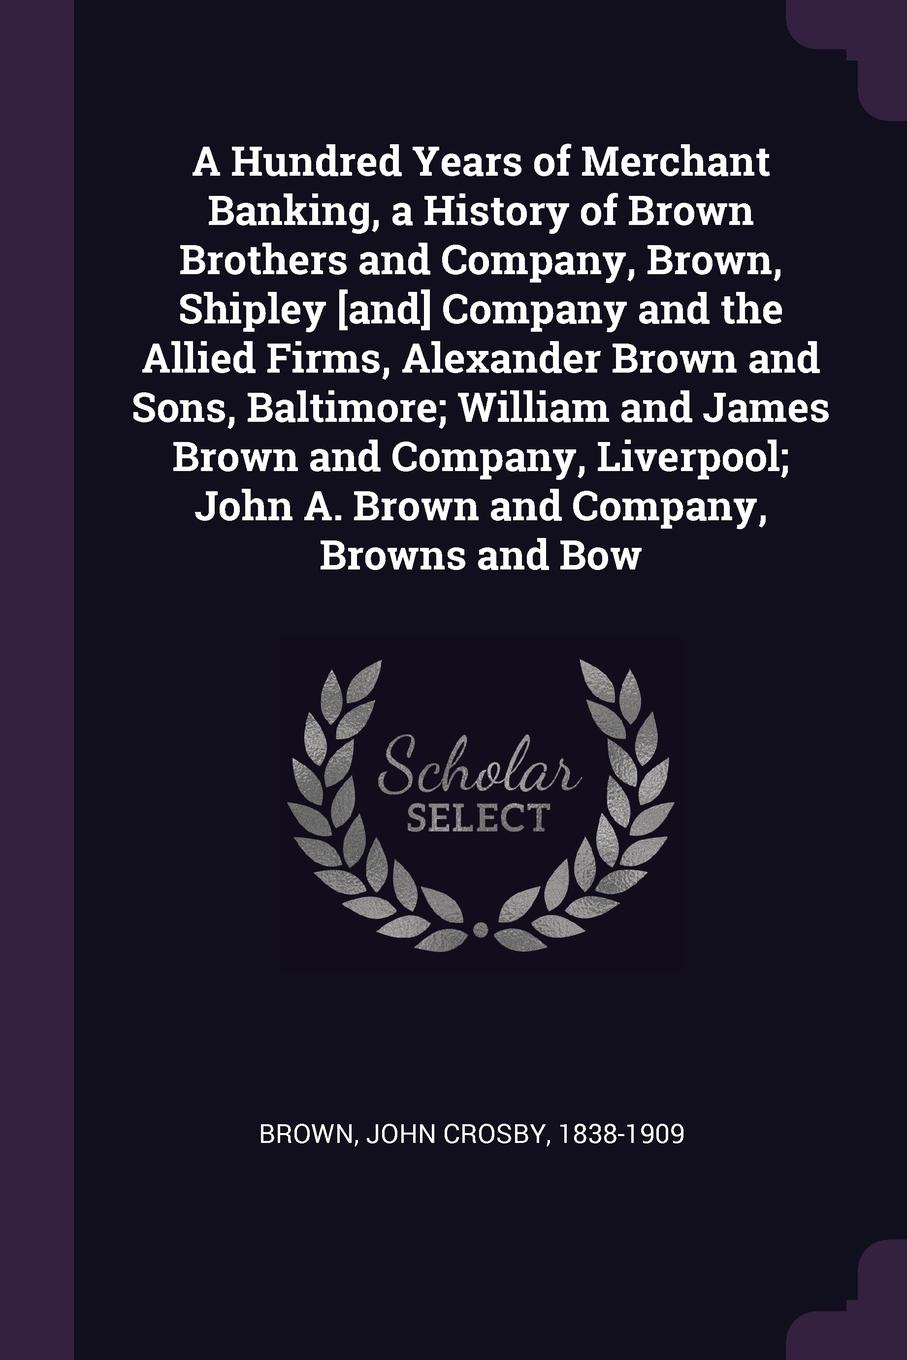 John Crosby Brown A Hundred Years of Merchant Banking, a History Brothers and Company, Brown, Shipley .and. Company the Allied Firms, Alexander Sons, Baltimore; William James Liverpool; A. Browns...